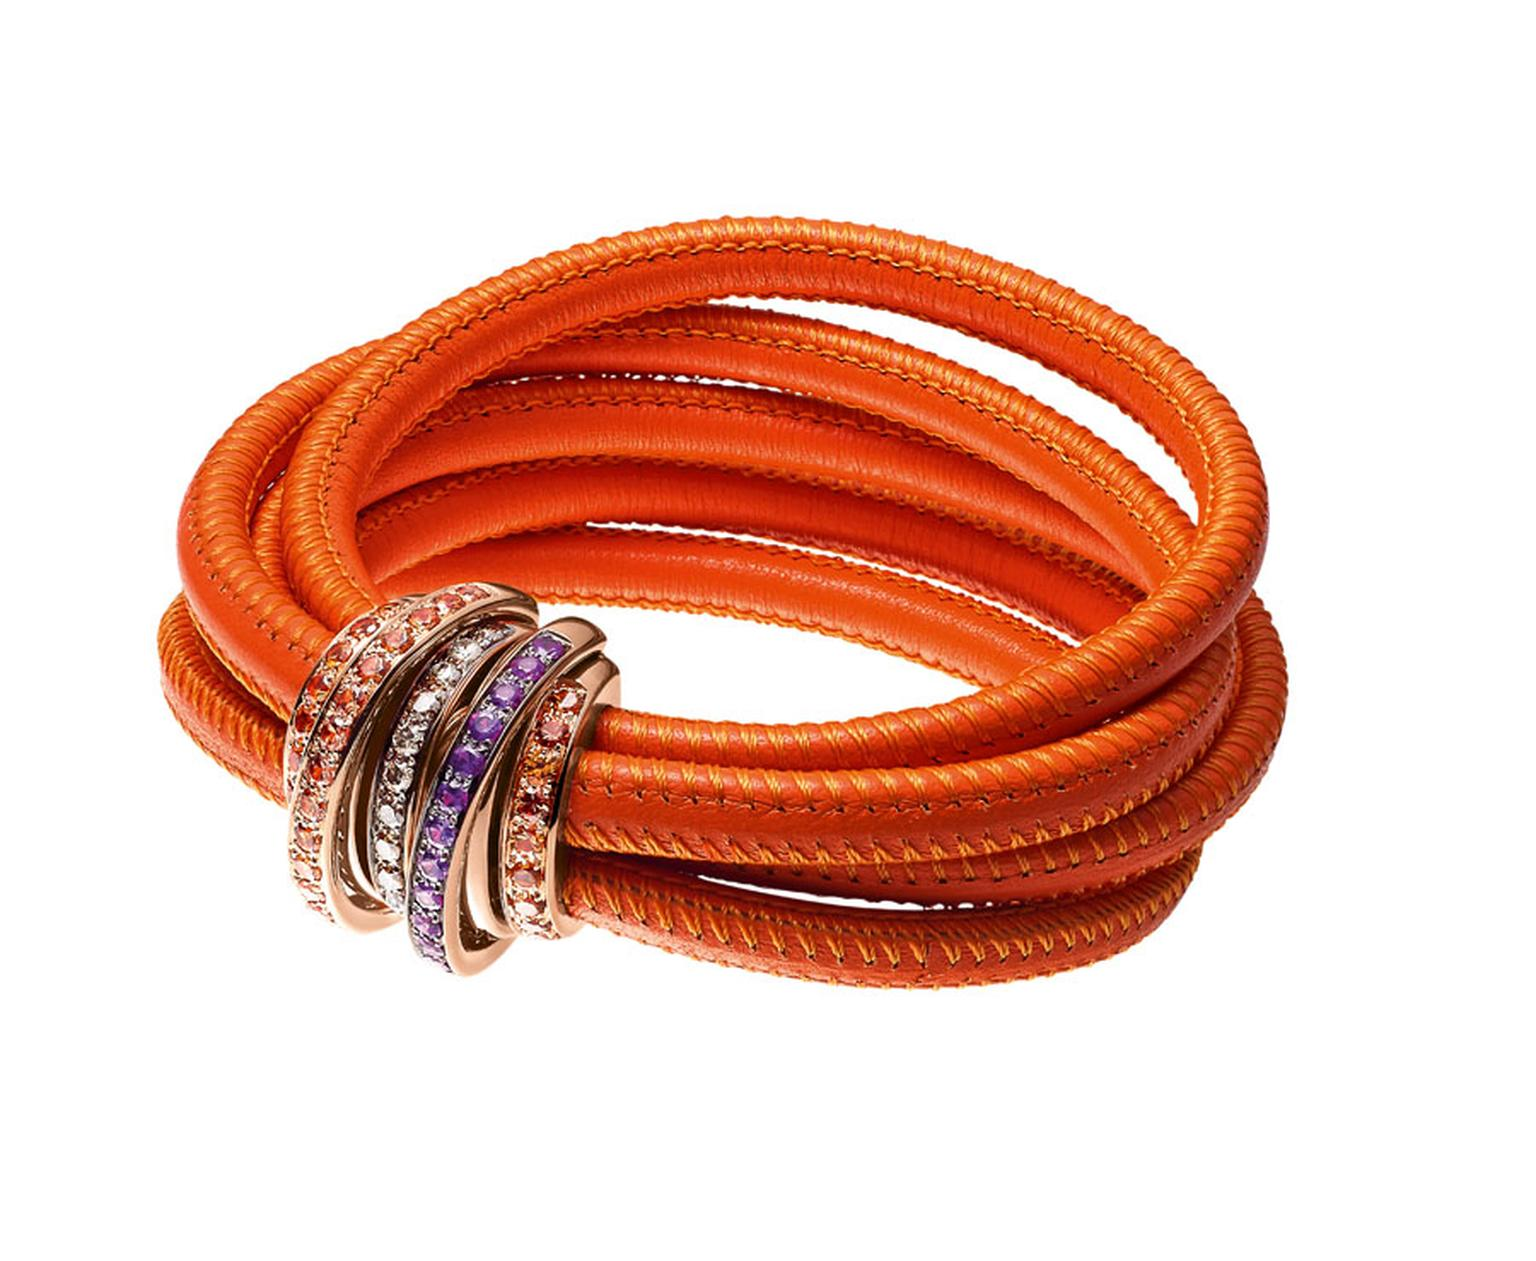 The 'Allegra' bracelet in bright orange, perfect for the summer.